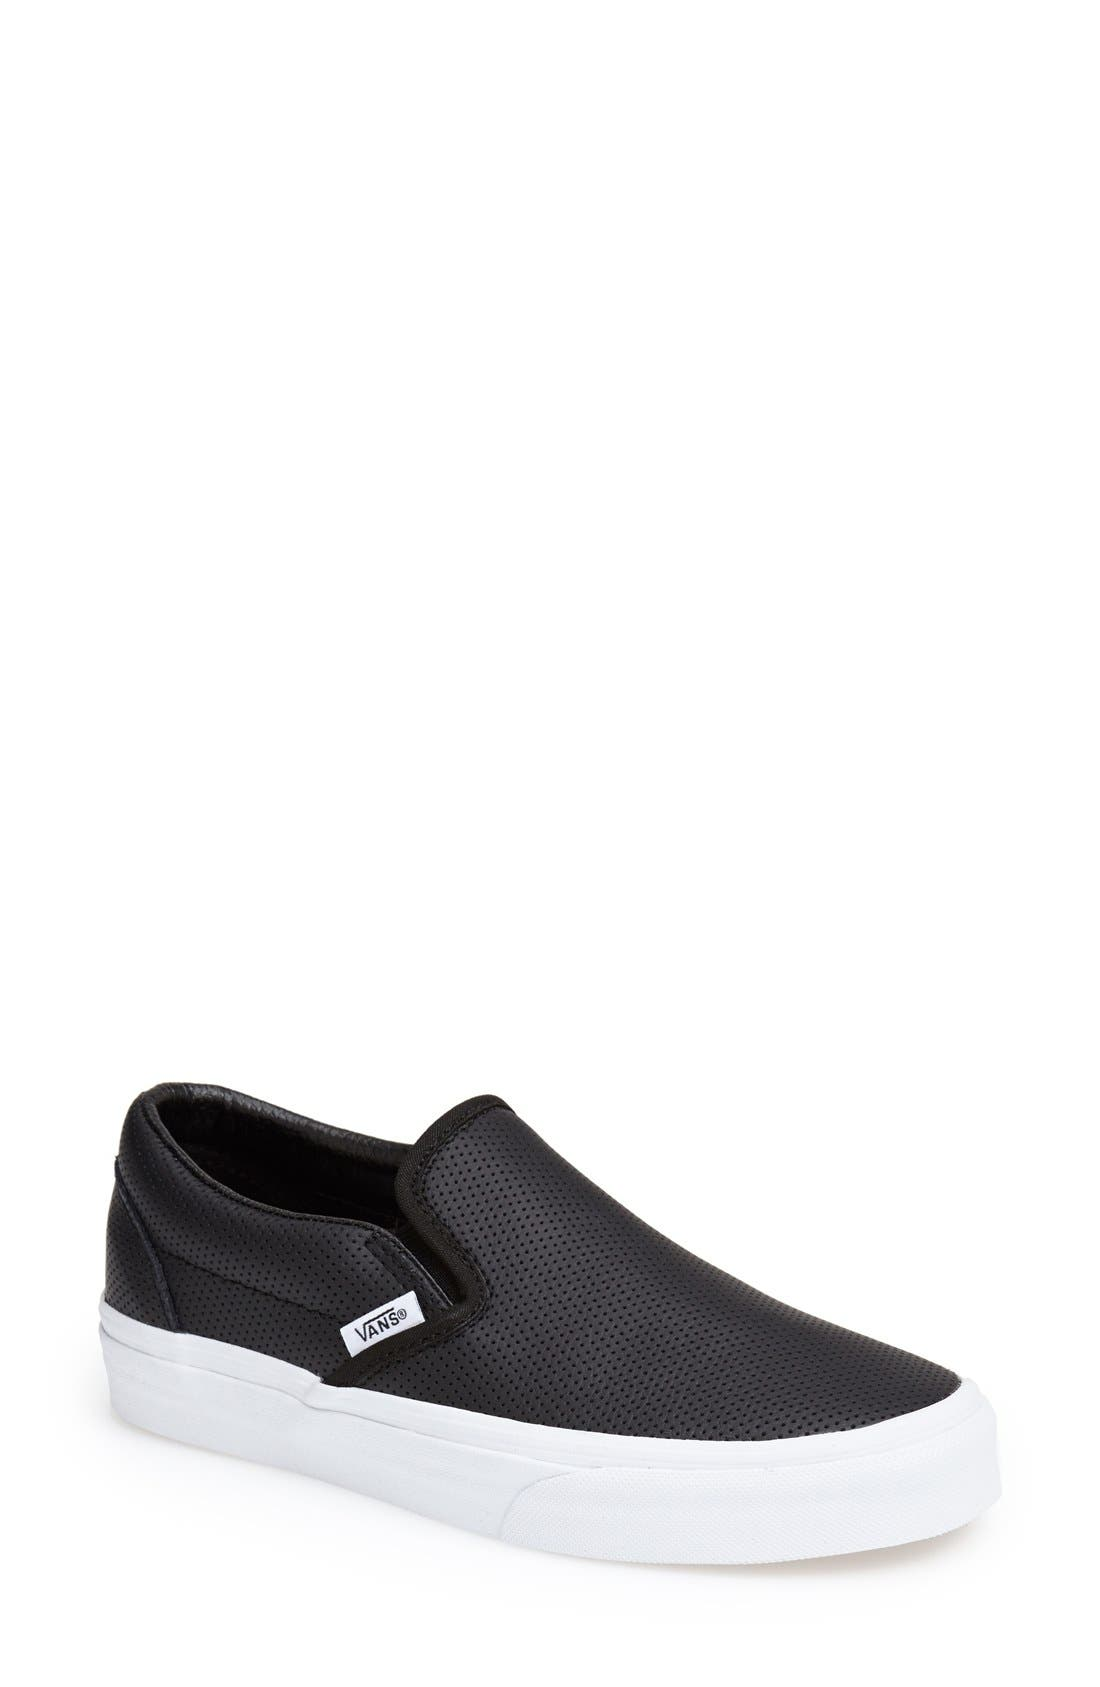 VANS 'Classic' Sneaker, Main, color, LEATHER BLACK